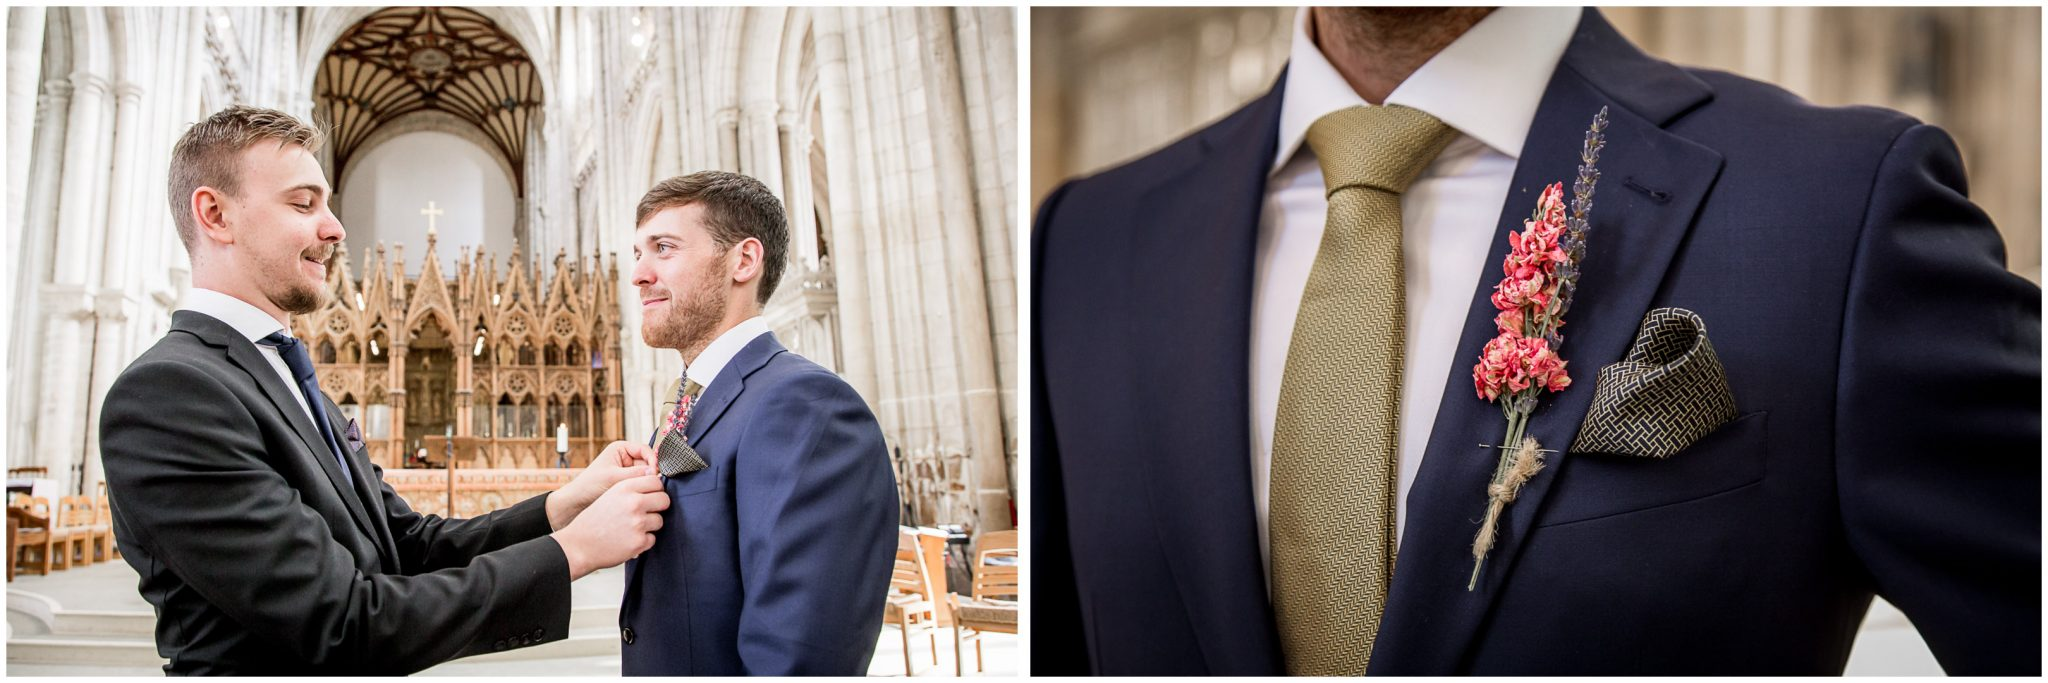 winchester cathedral wedding photography groom and best man before ceremony